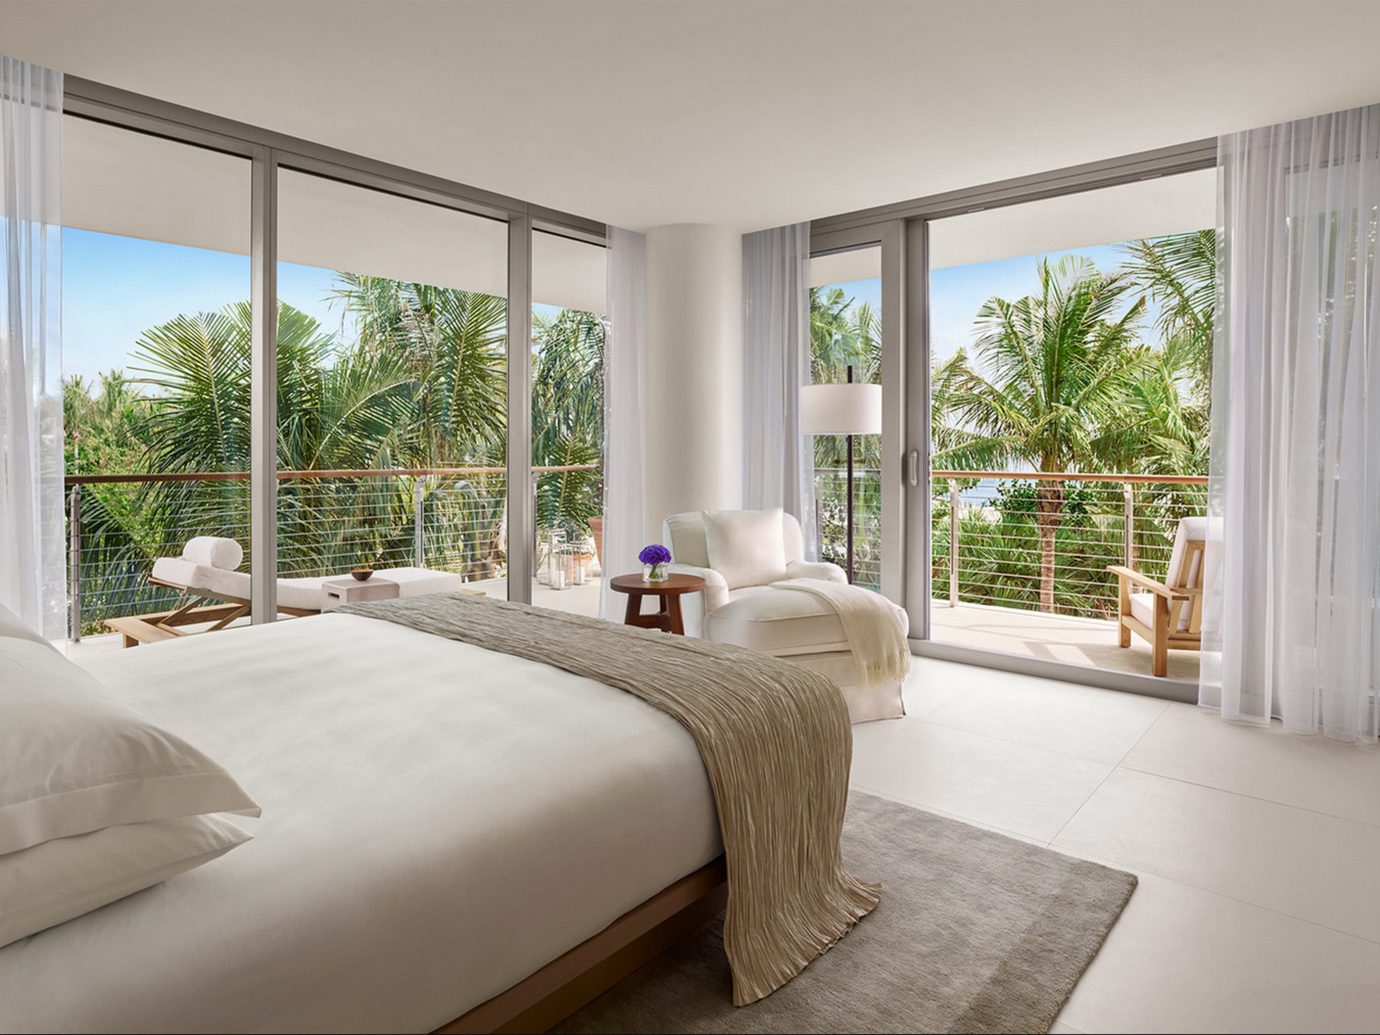 Bedroom in The Miami Beach EDITION - Miami Hotel